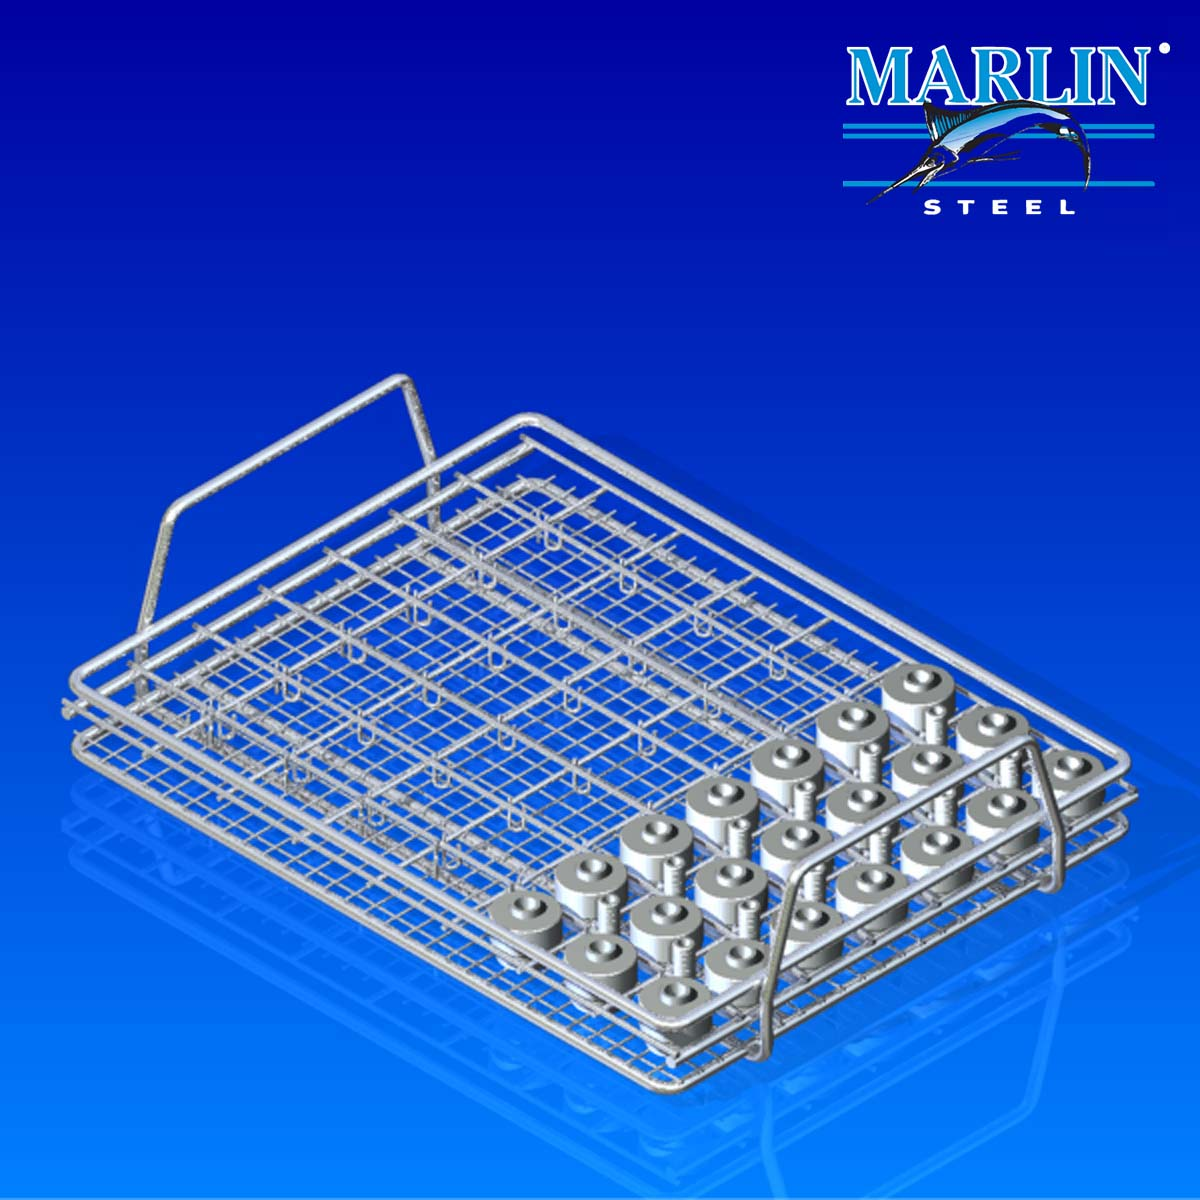 Marlin Steel Wire Material Handling Basket 620001